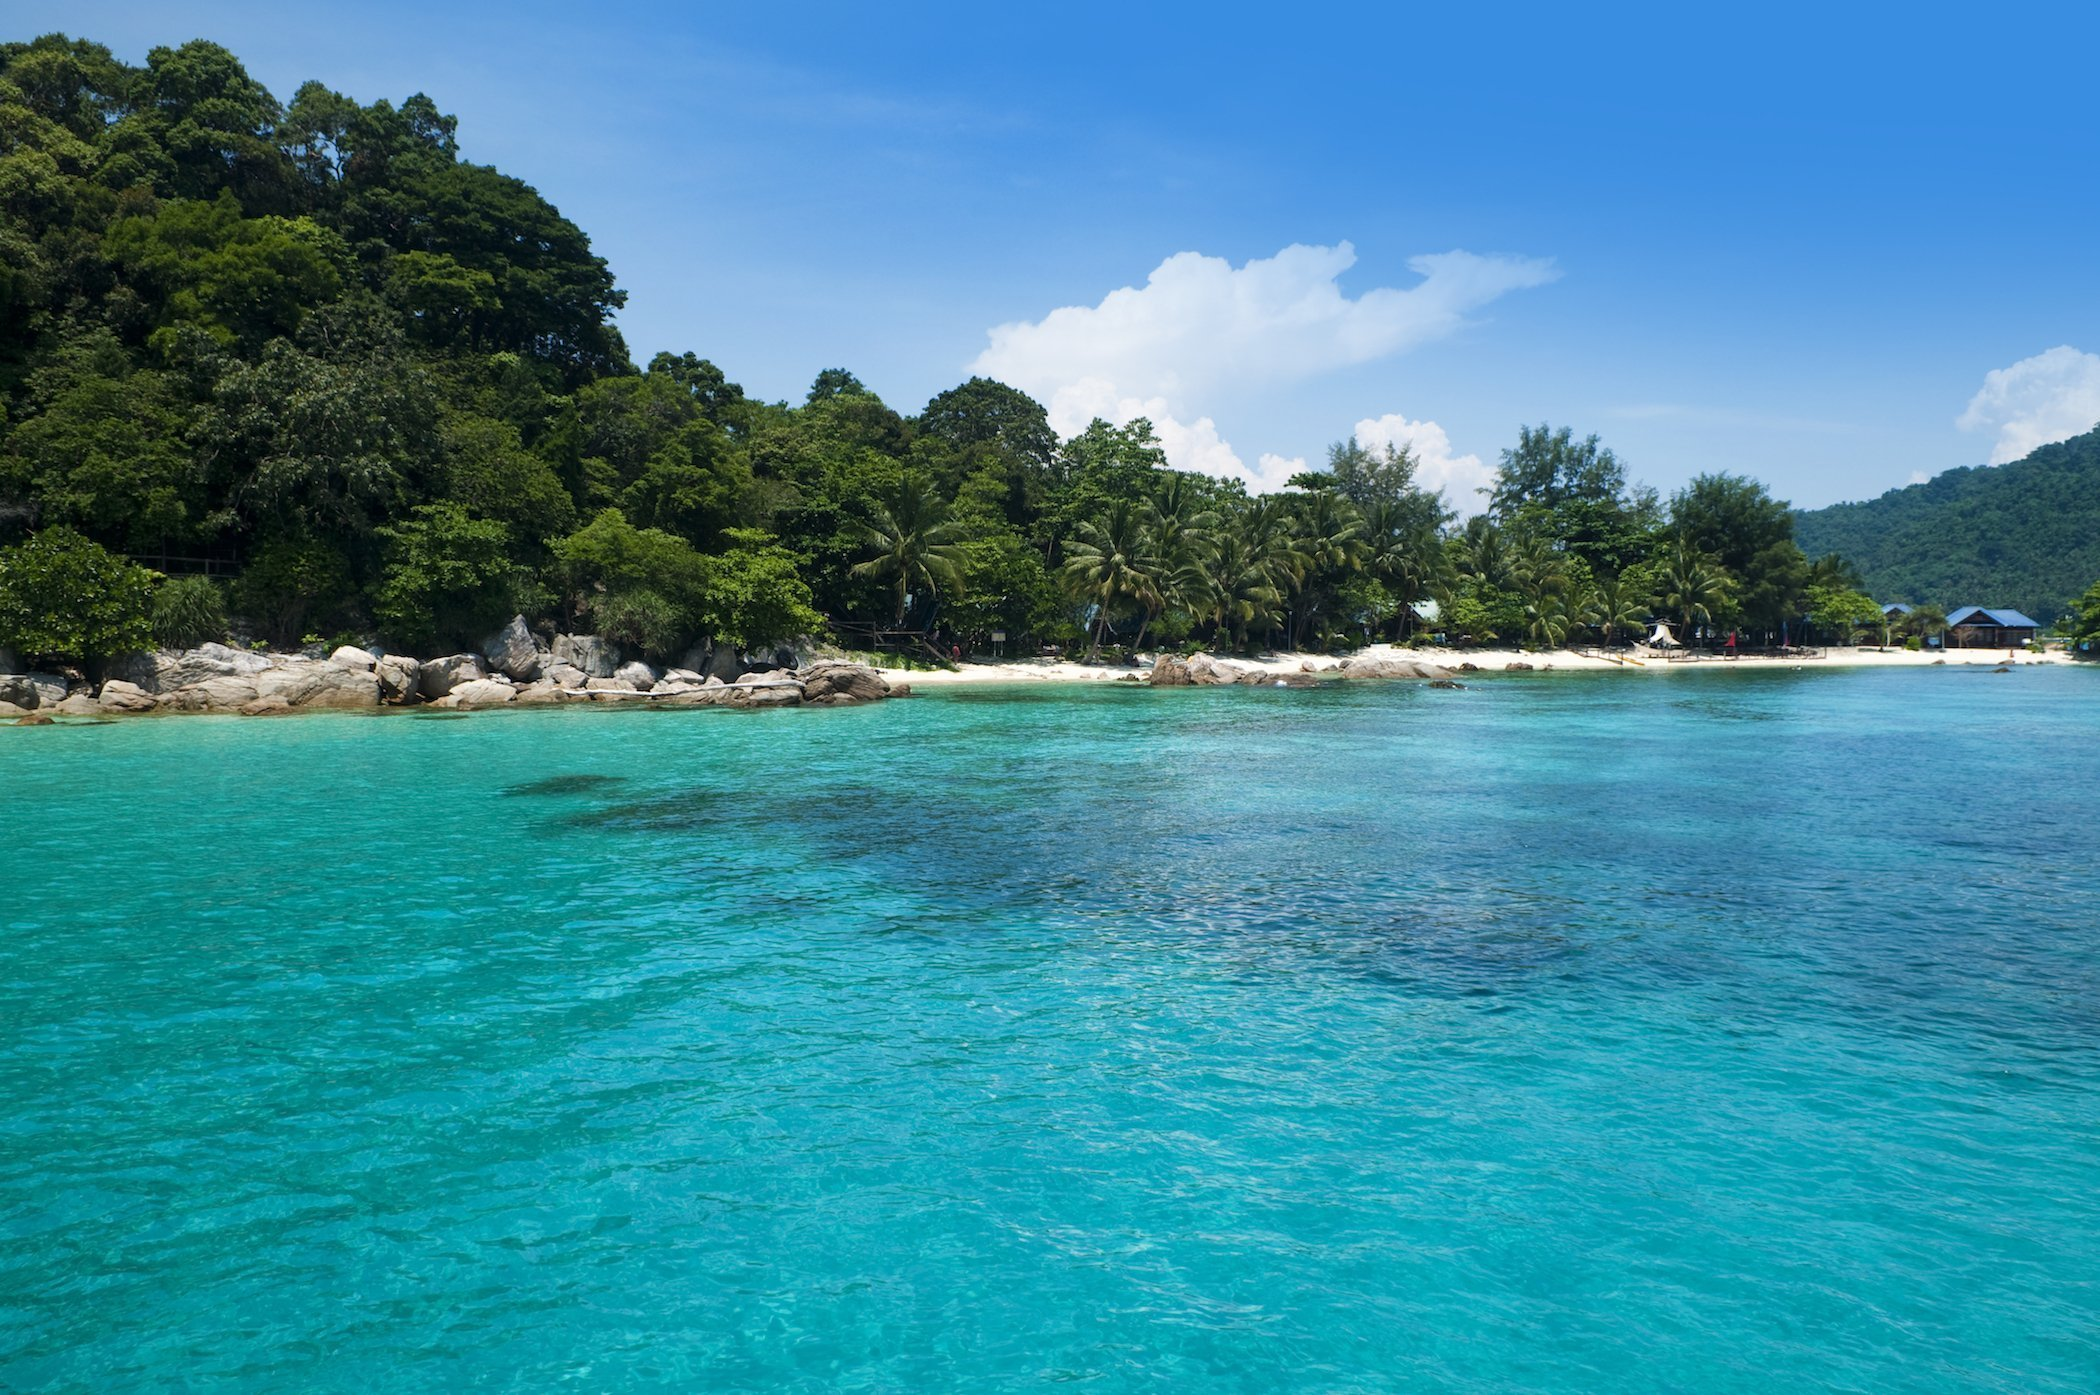 Perhentian Islands have the Clearest Turquoise Waters in Malaysia